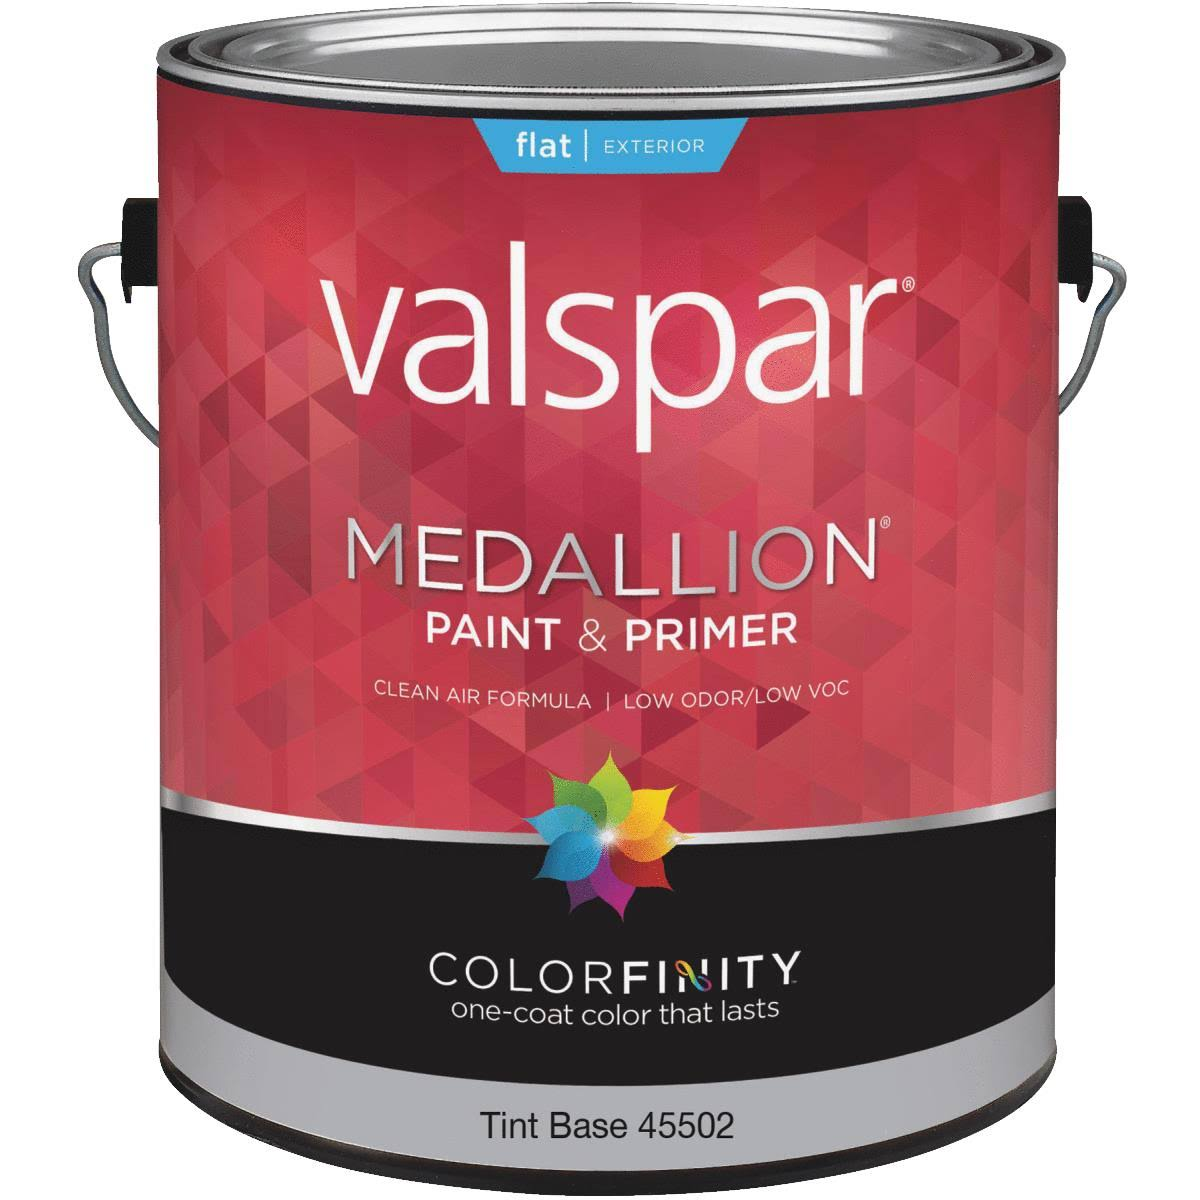 Valspar Medallion 100% Acrylic Exterior Flat Latex House Paint - 1gal